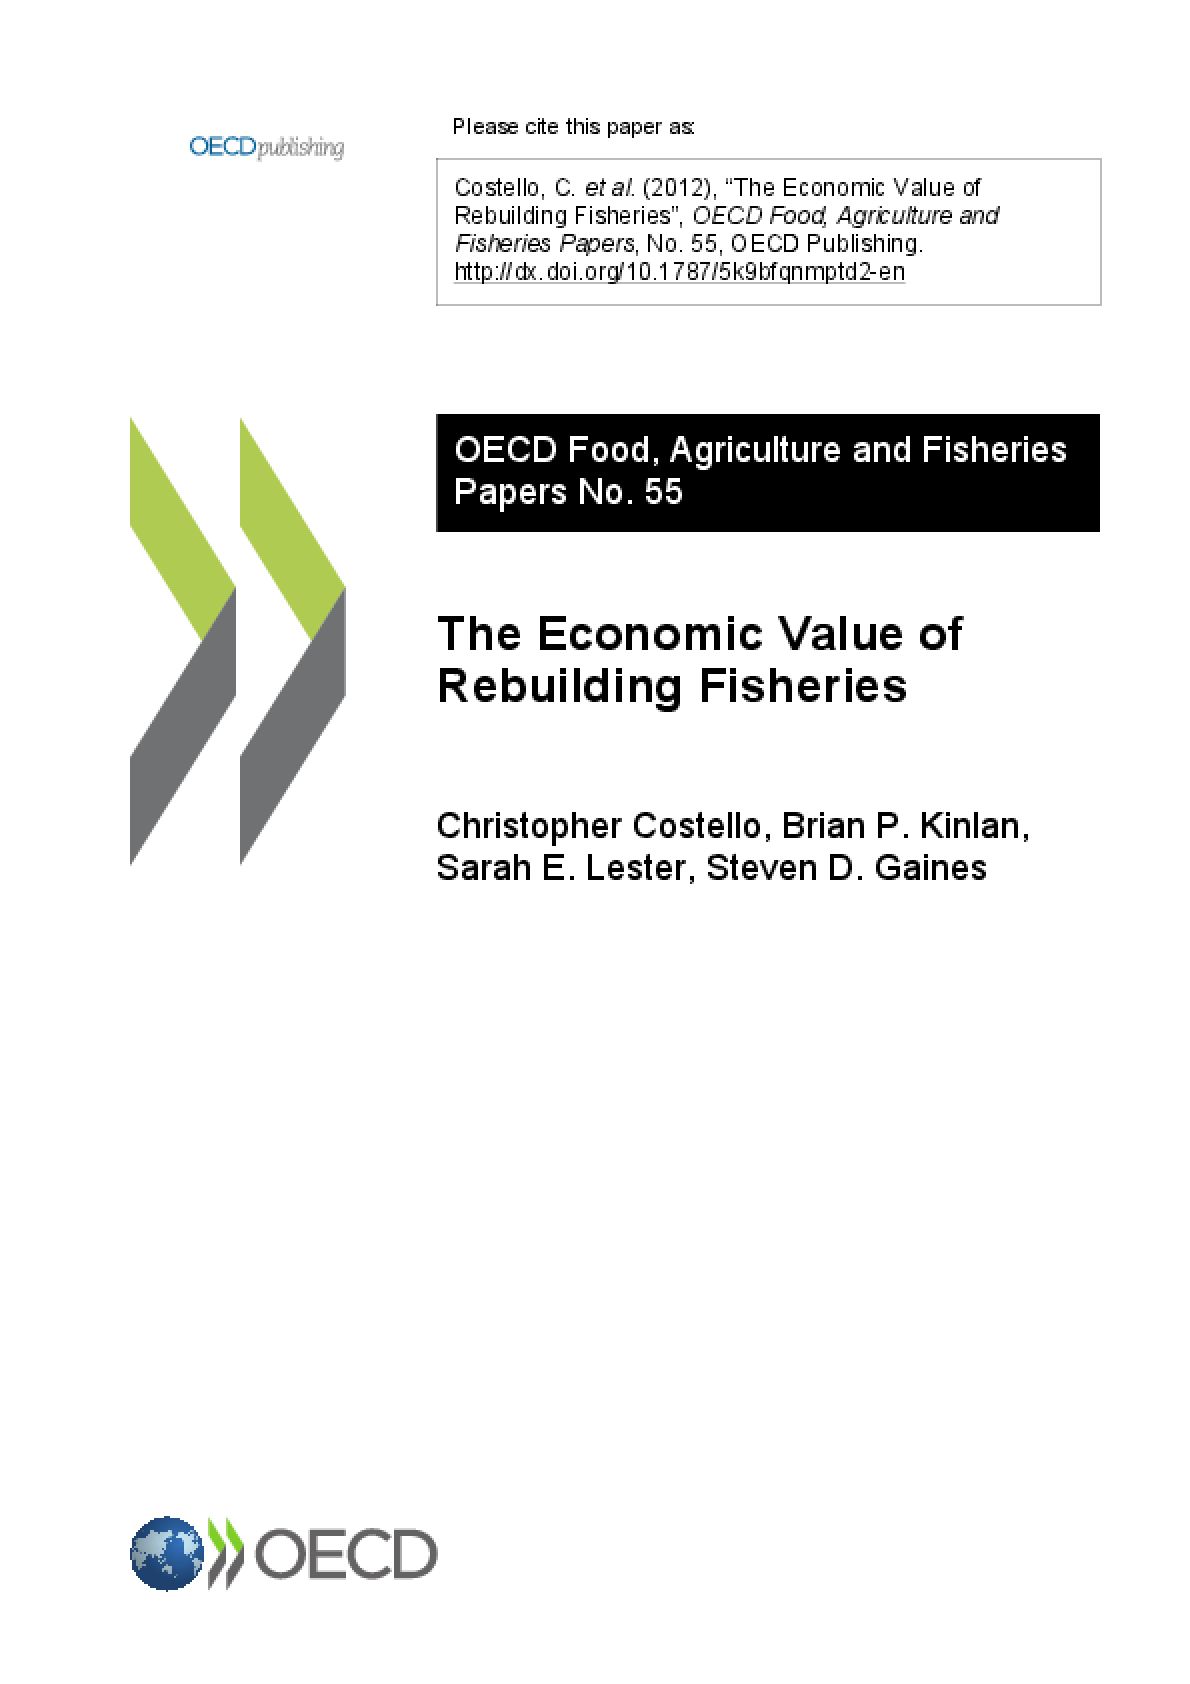 The Economic Value of Rebuilding Fisheries